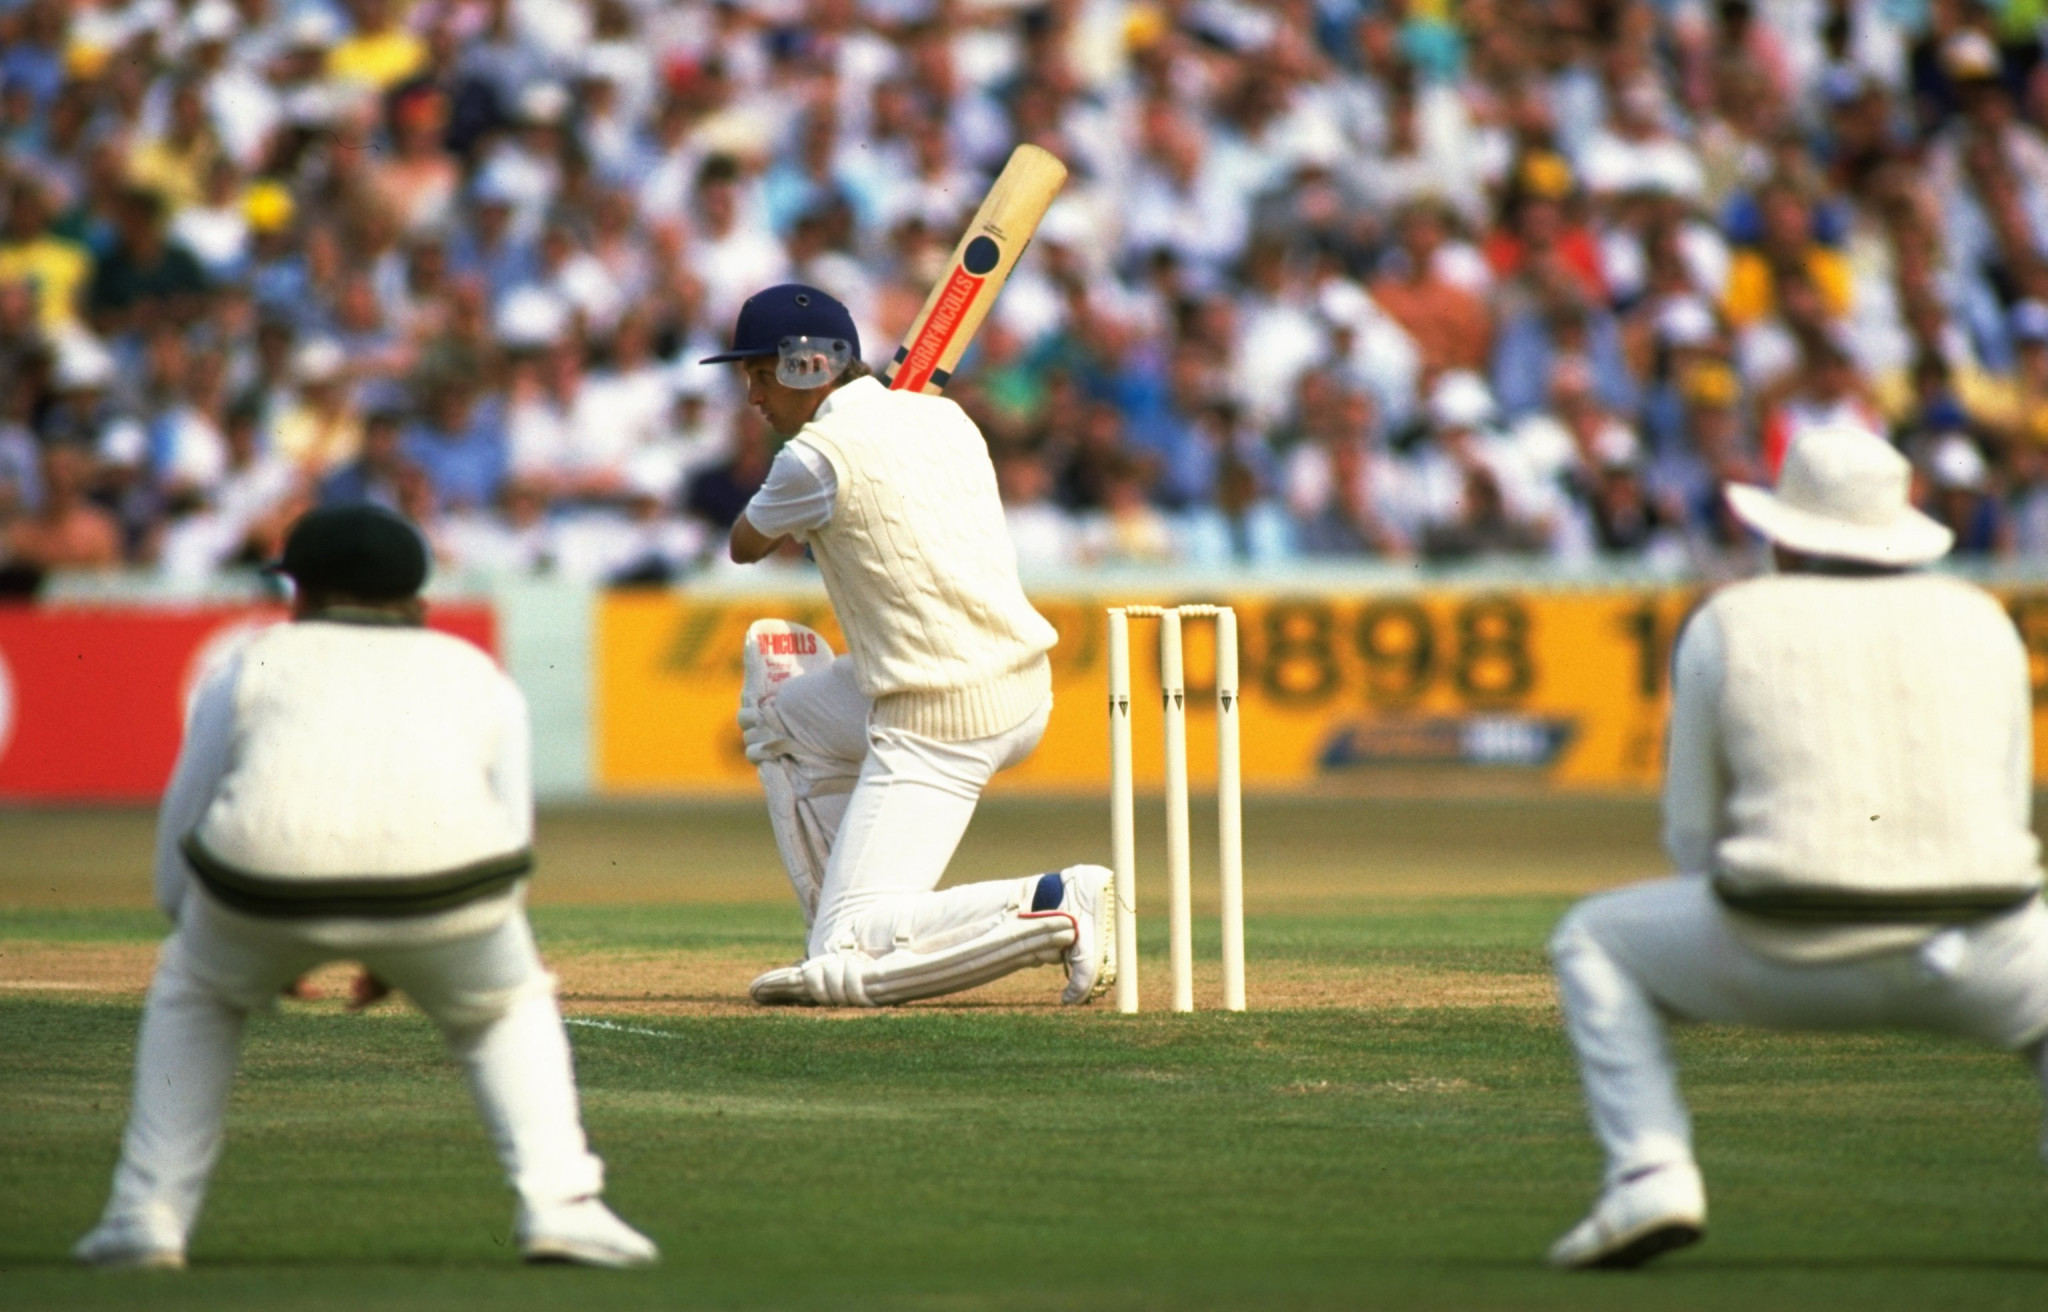 Cricketers of yesteryear played with more elegance than many of today's powerful strikers of the ball ©Getty Images